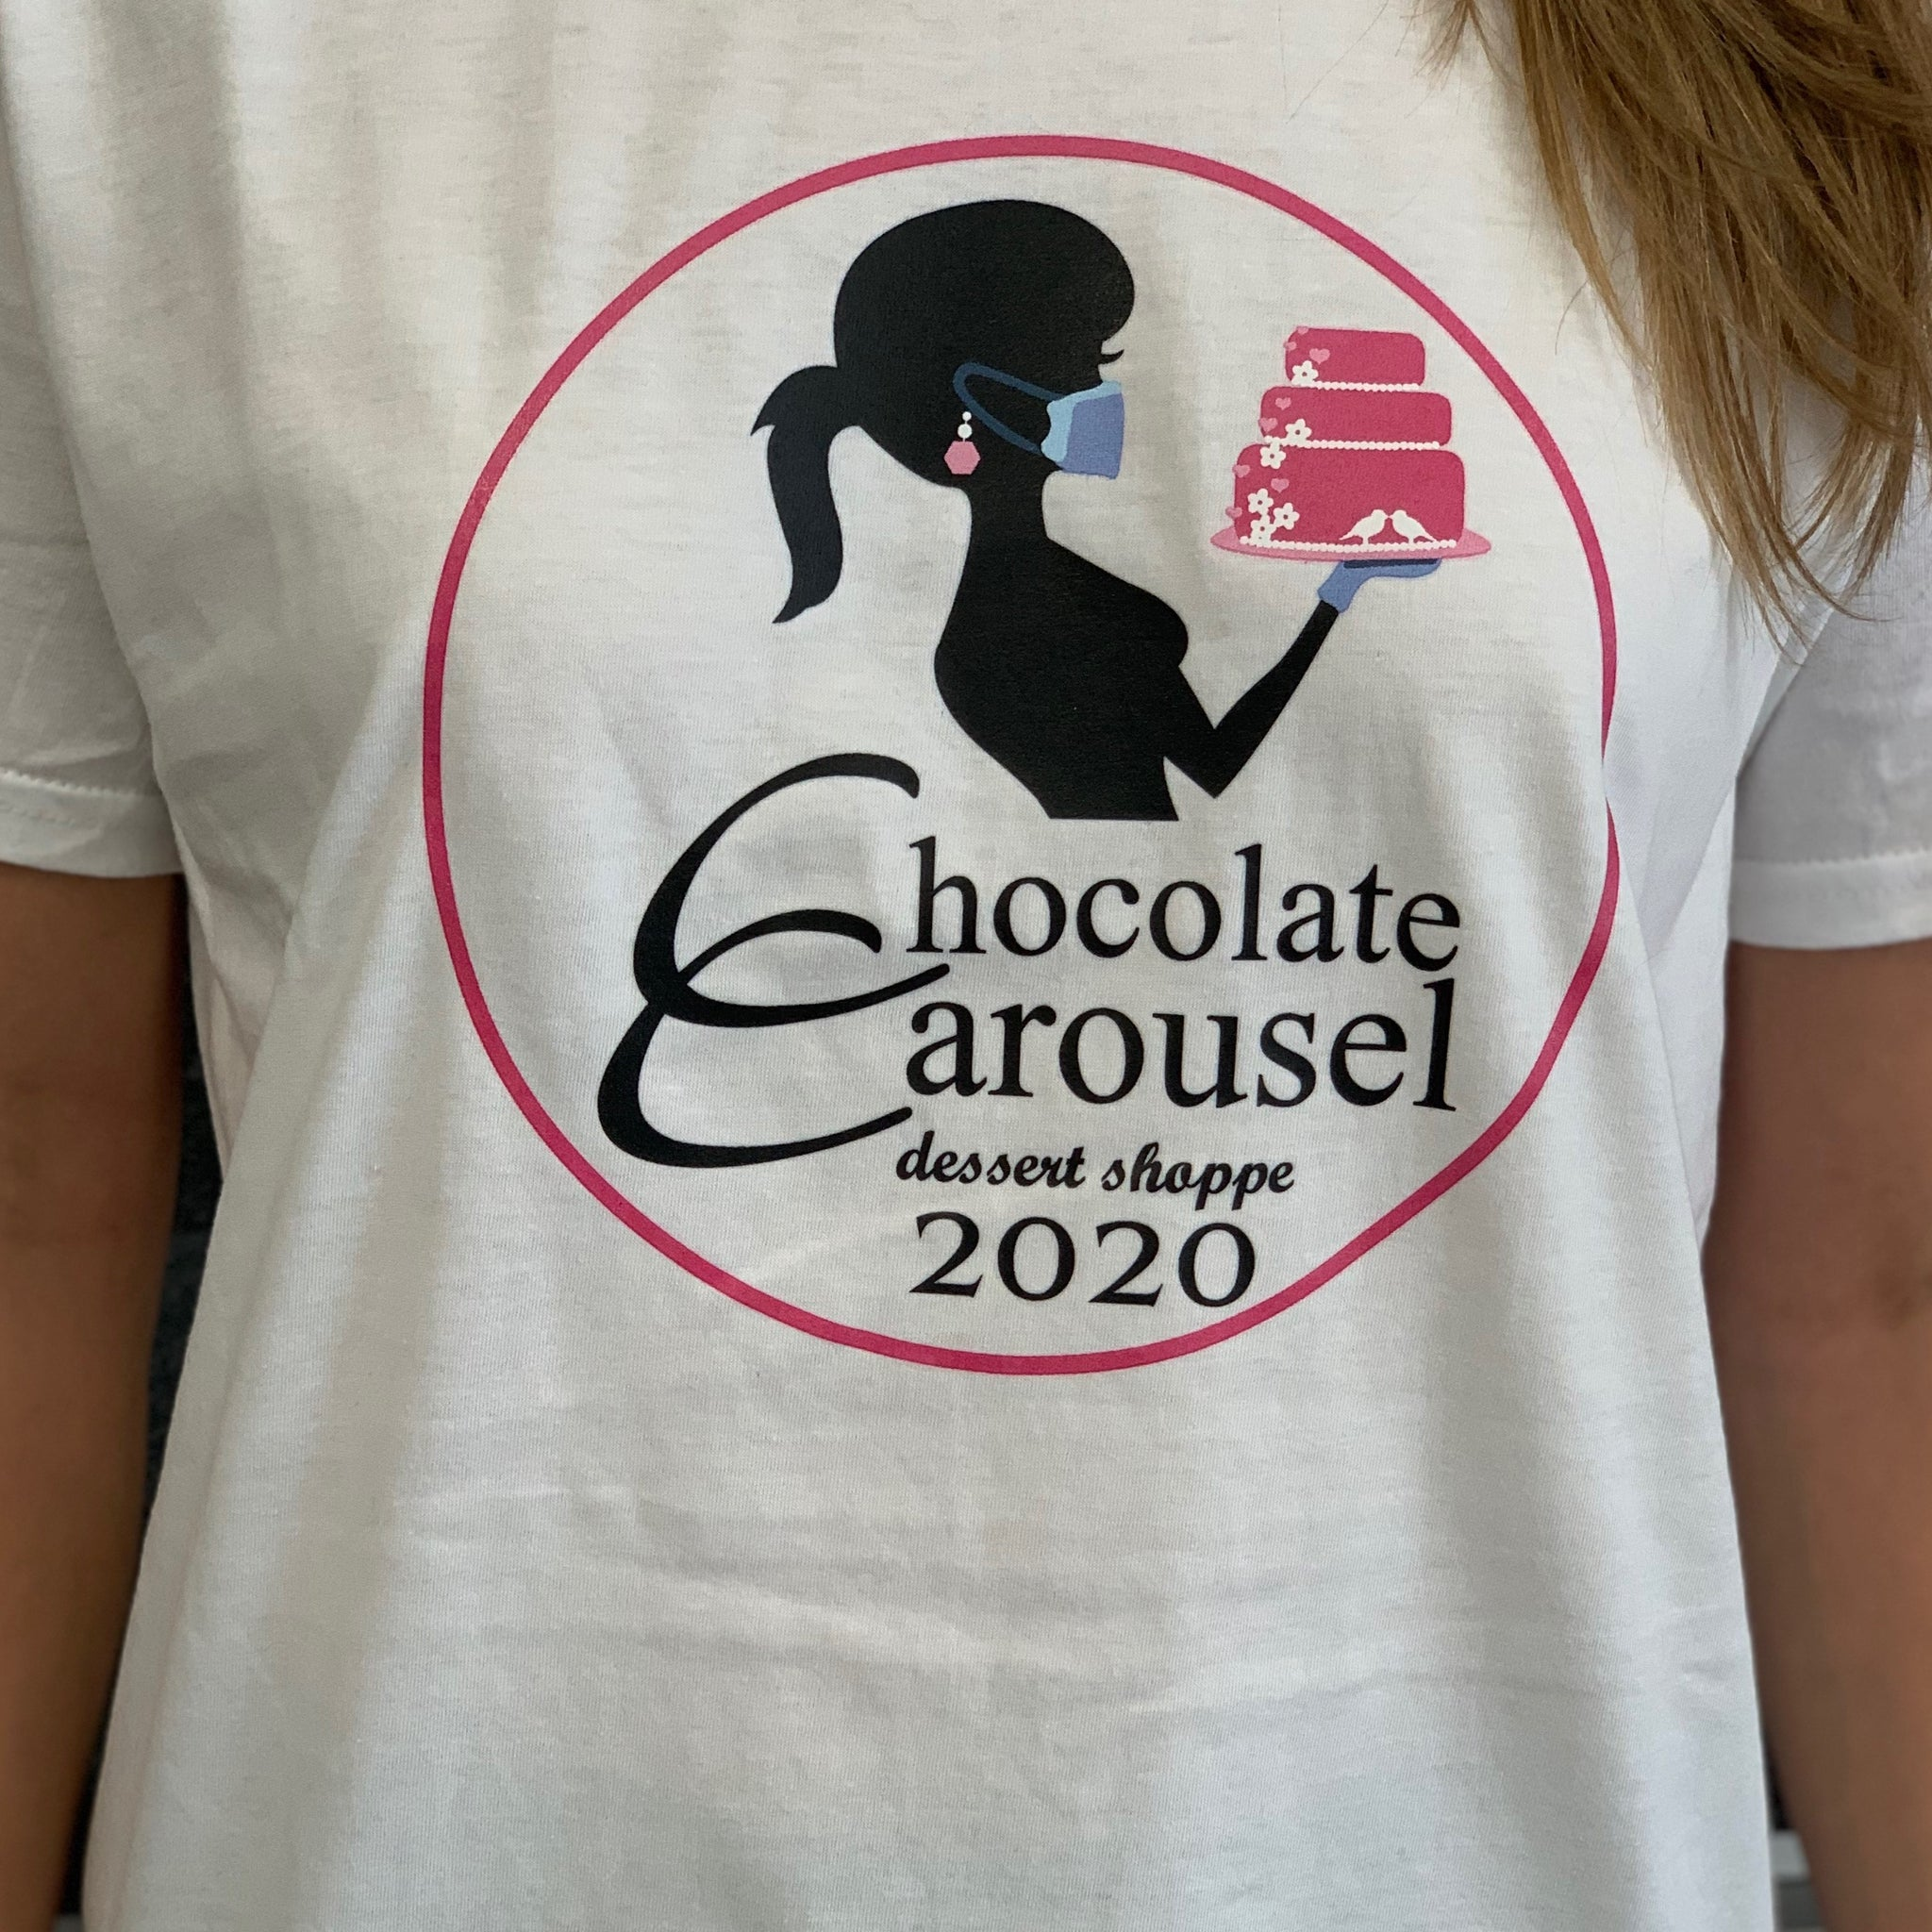 White 2020 Chocolate Carousel T-Shirt